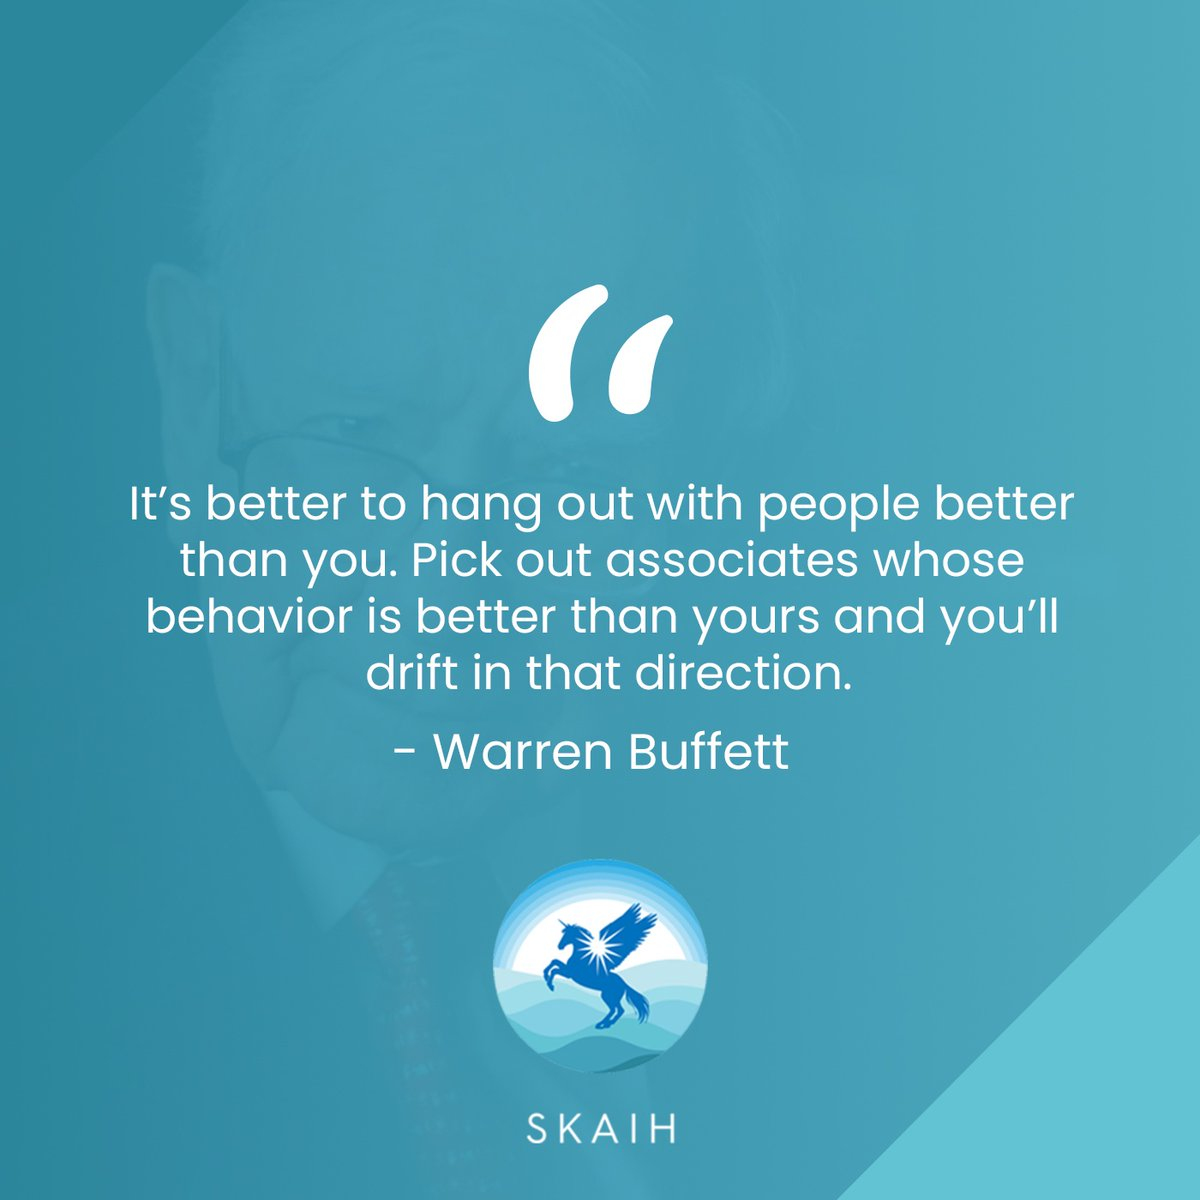 It's better to hang out with people better than you. Pick out associates whose behavior is better than yours and you'll drift in that direction ~Warren Buffett~  #BEALEADER #UNDERSTANDYOURWORTH #PAVETHEWAY #MOTIVATOR #MILLIONAIRESTATUS #LIVEOUTGODSPURPOSE #GODSGRACE #SKAIHpic.twitter.com/Yllcc3mgqt